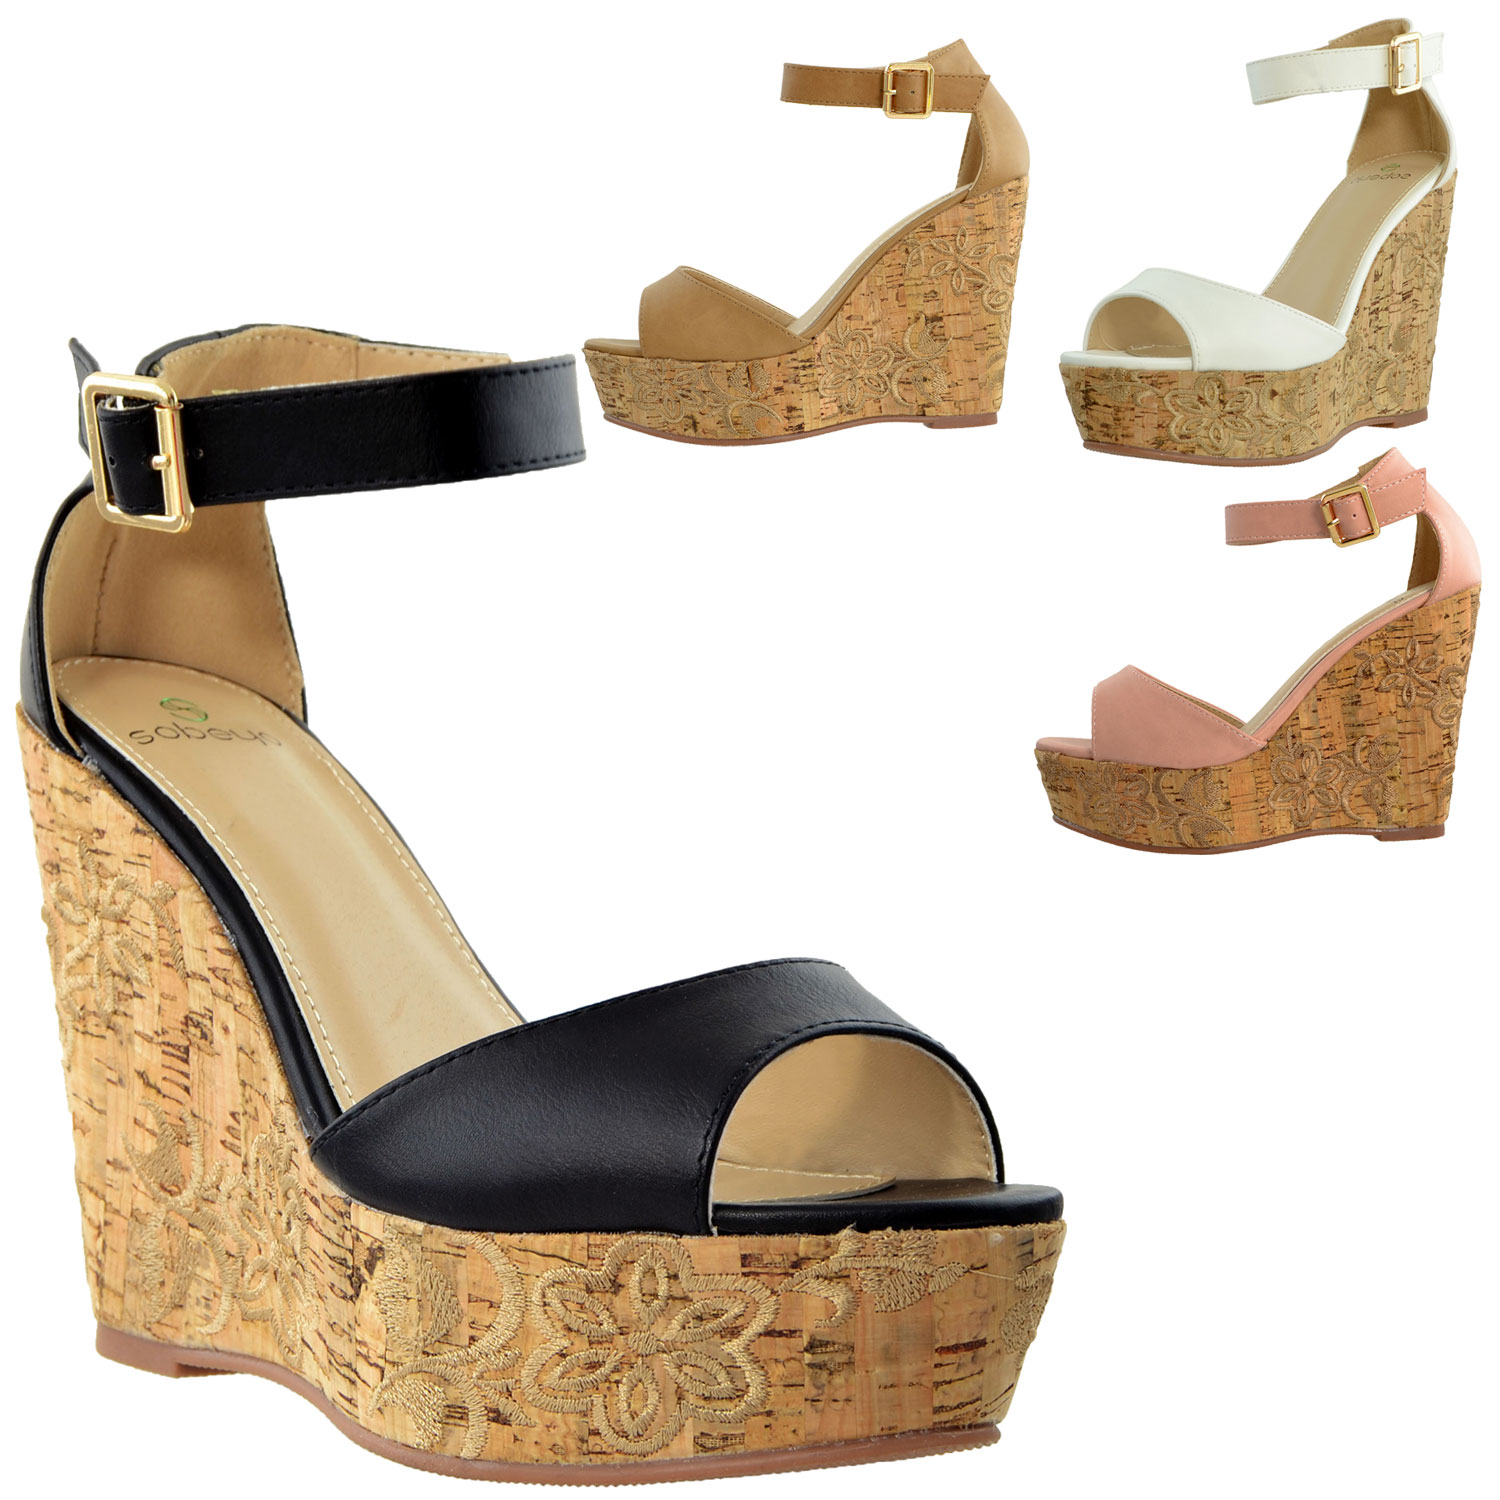 f9ae76a59e4b Details about Womens Platform Sandals Ankle Strap Embroidered Cork Heel  Wedges Tan